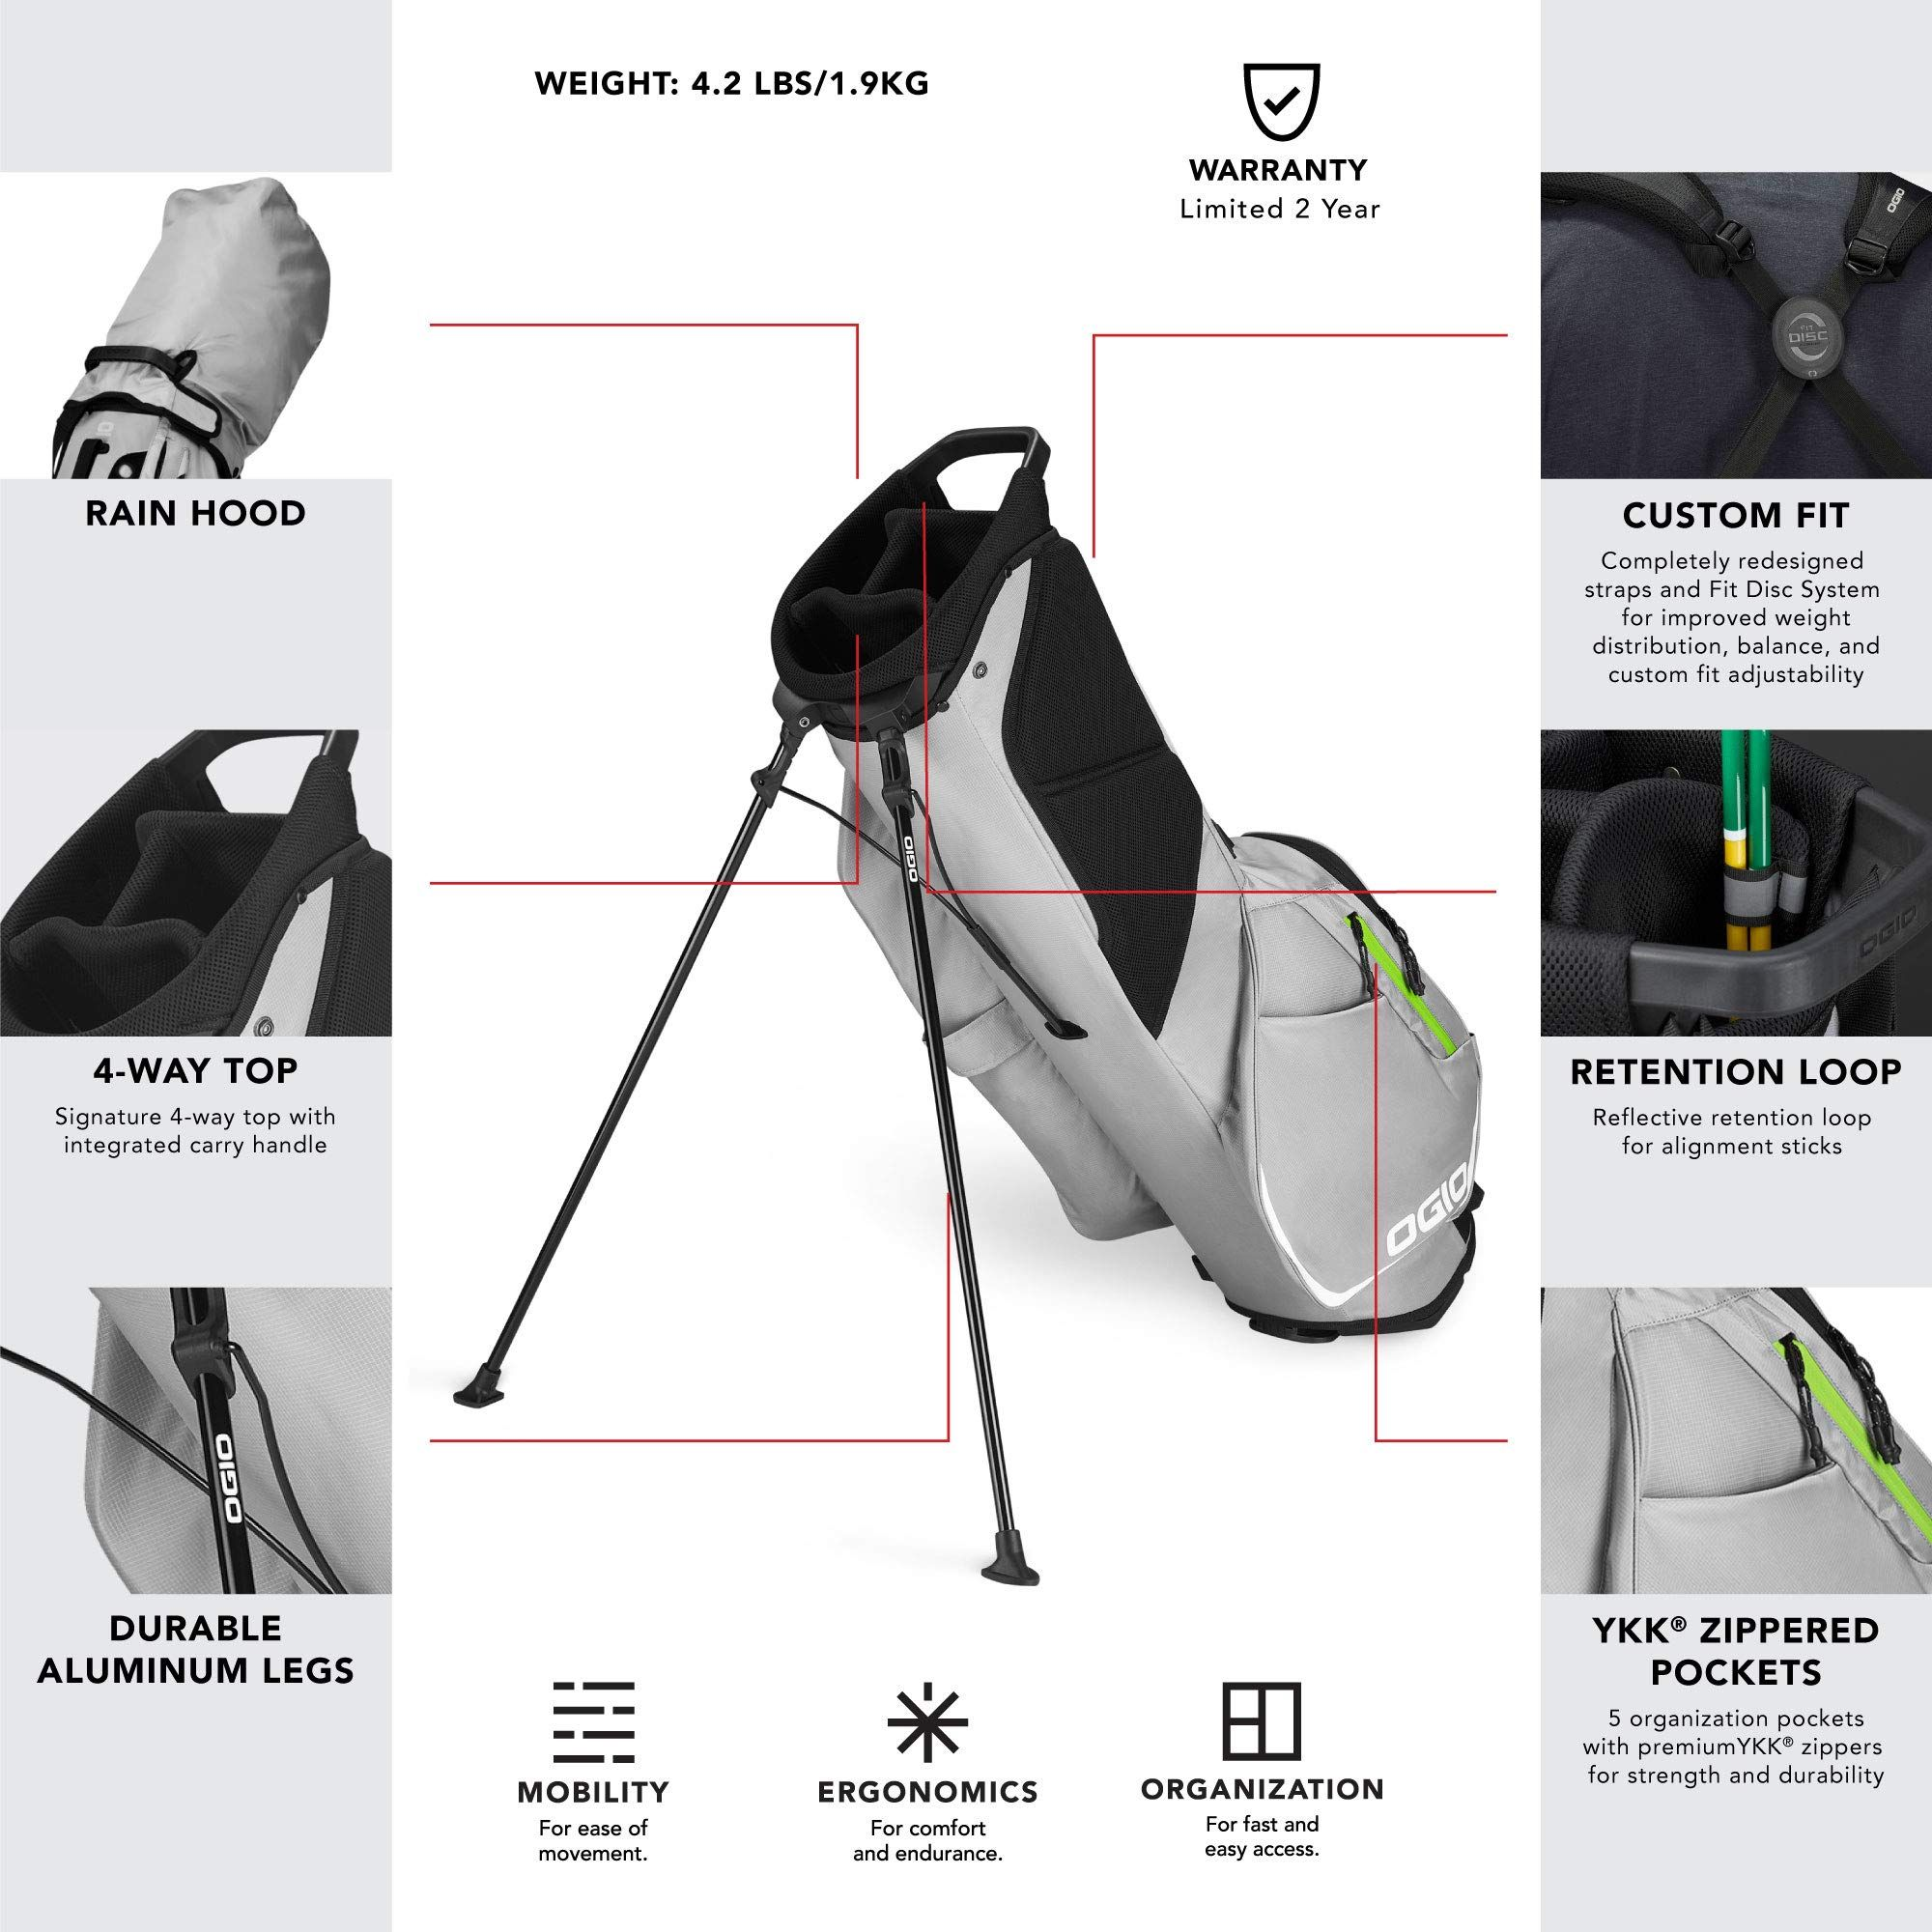 1a4d7728fe0 OGIO SHADOW Fuse 304 Golf Stand Bag Gray     Details can be found by  clicking on the image-affiliate link.  golfclubbags